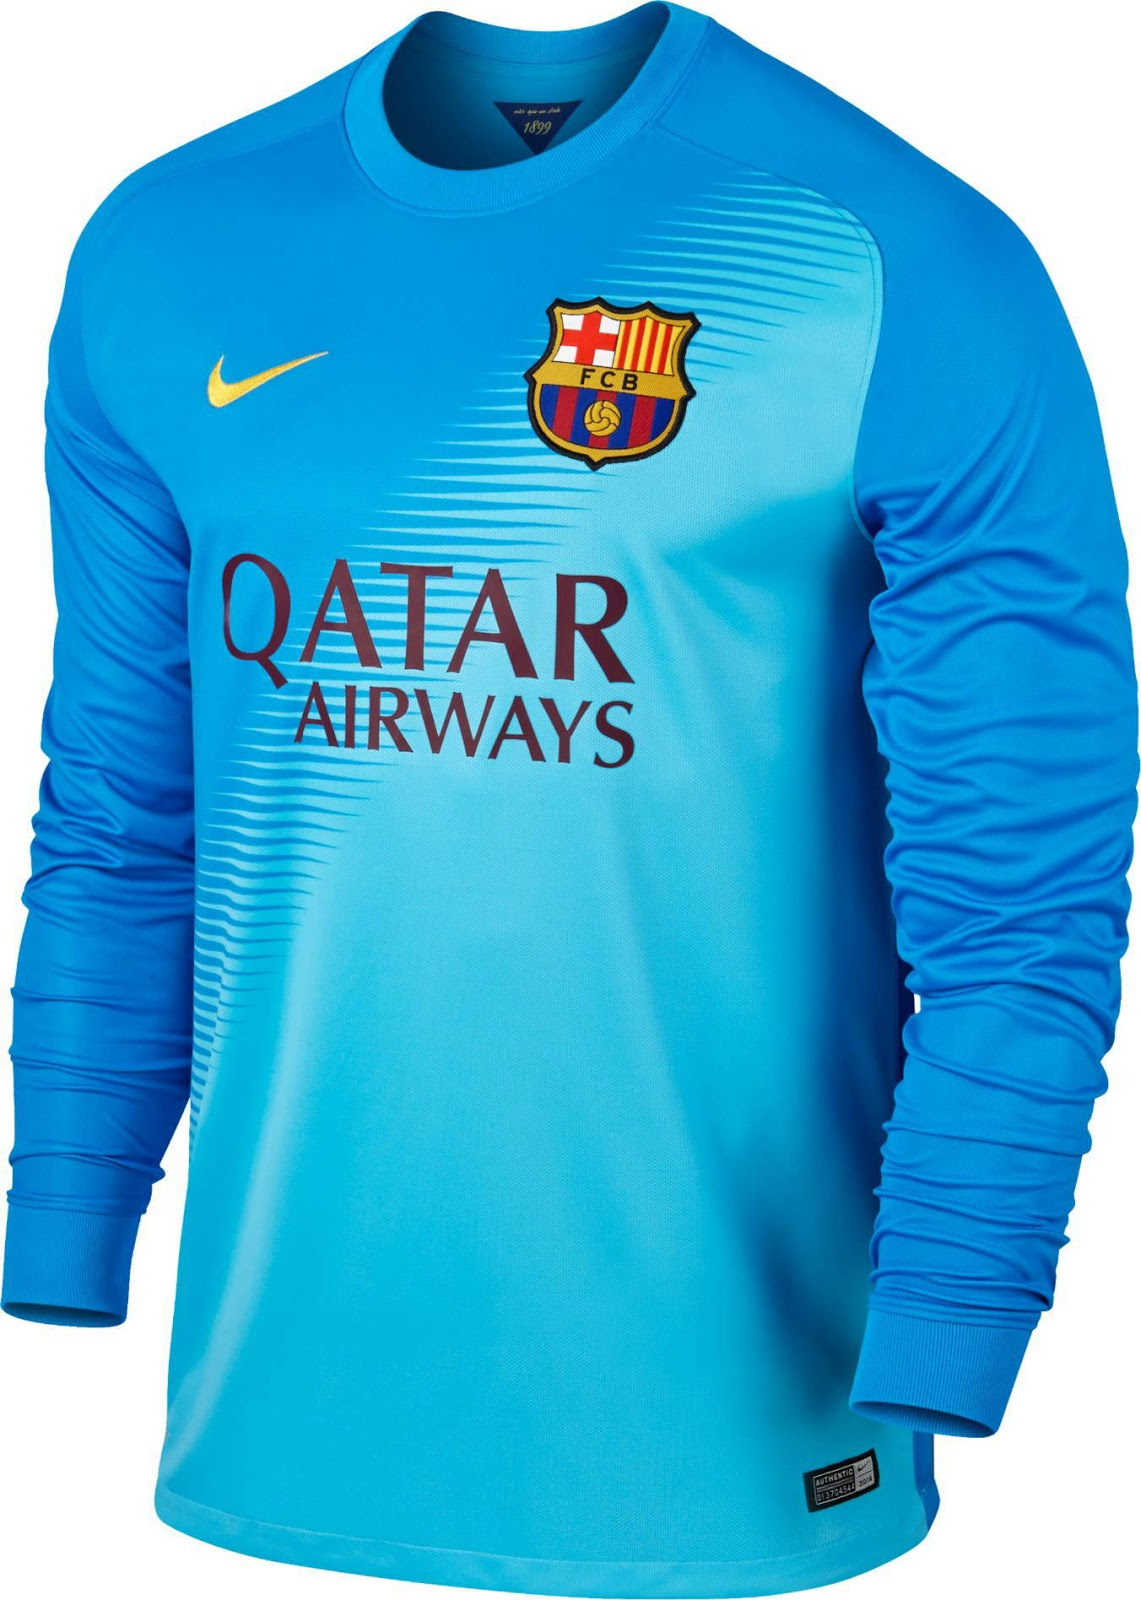 Fc Barcelona Away Jersey 2017 - Cardigan With Buttons ac9cf2e2a